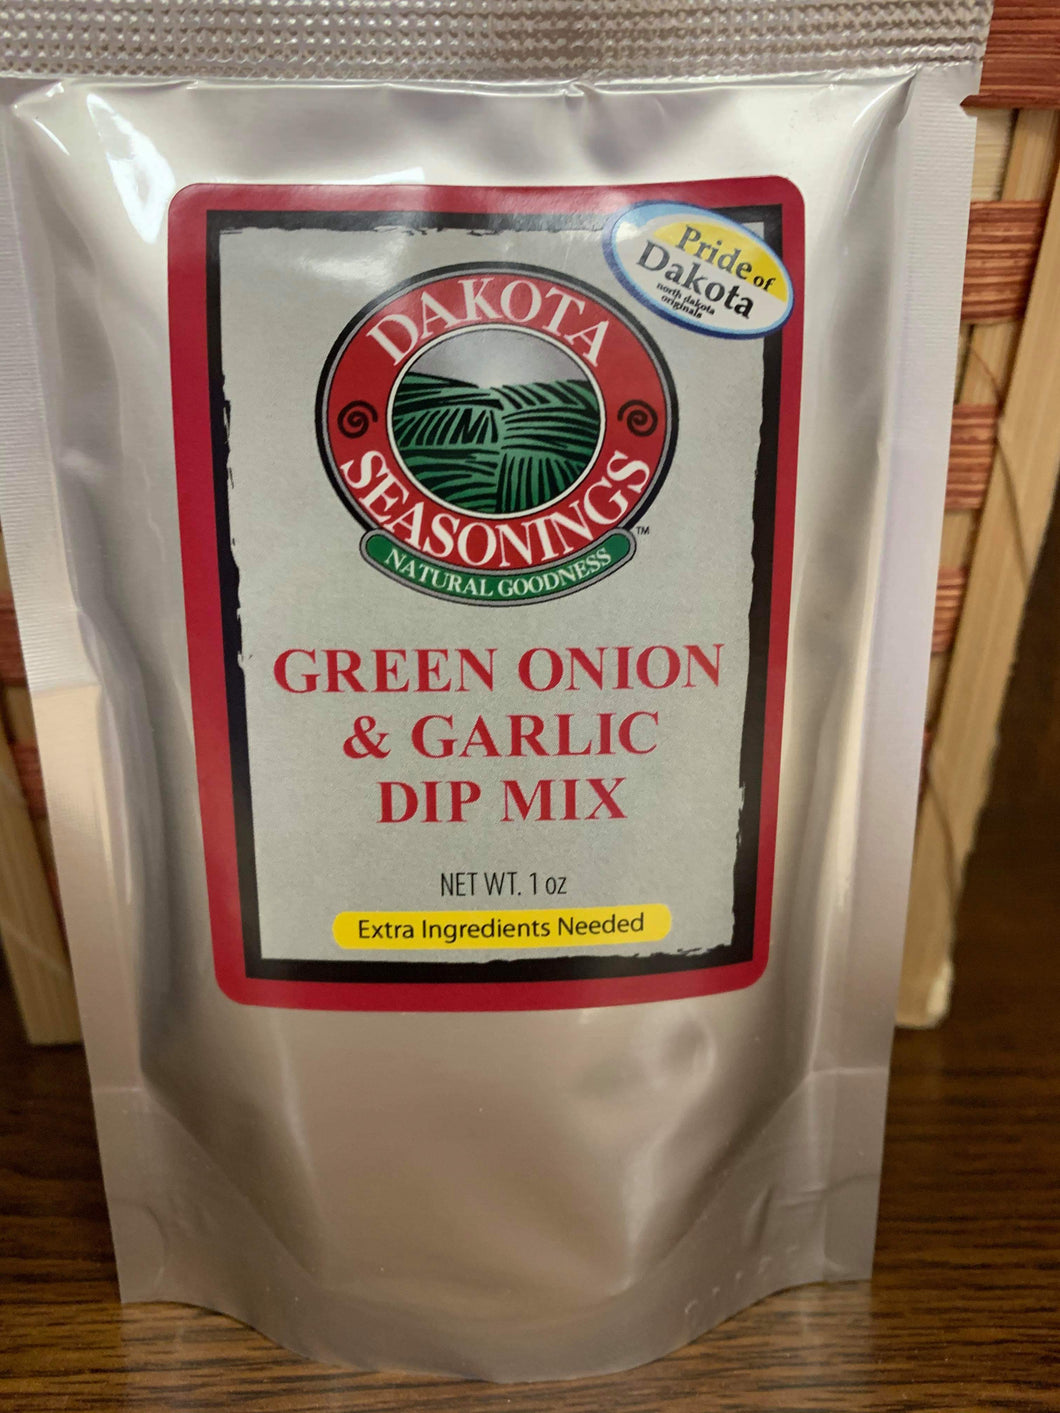 Dakota Seasonings Green Onion & Garlic Dip Mix